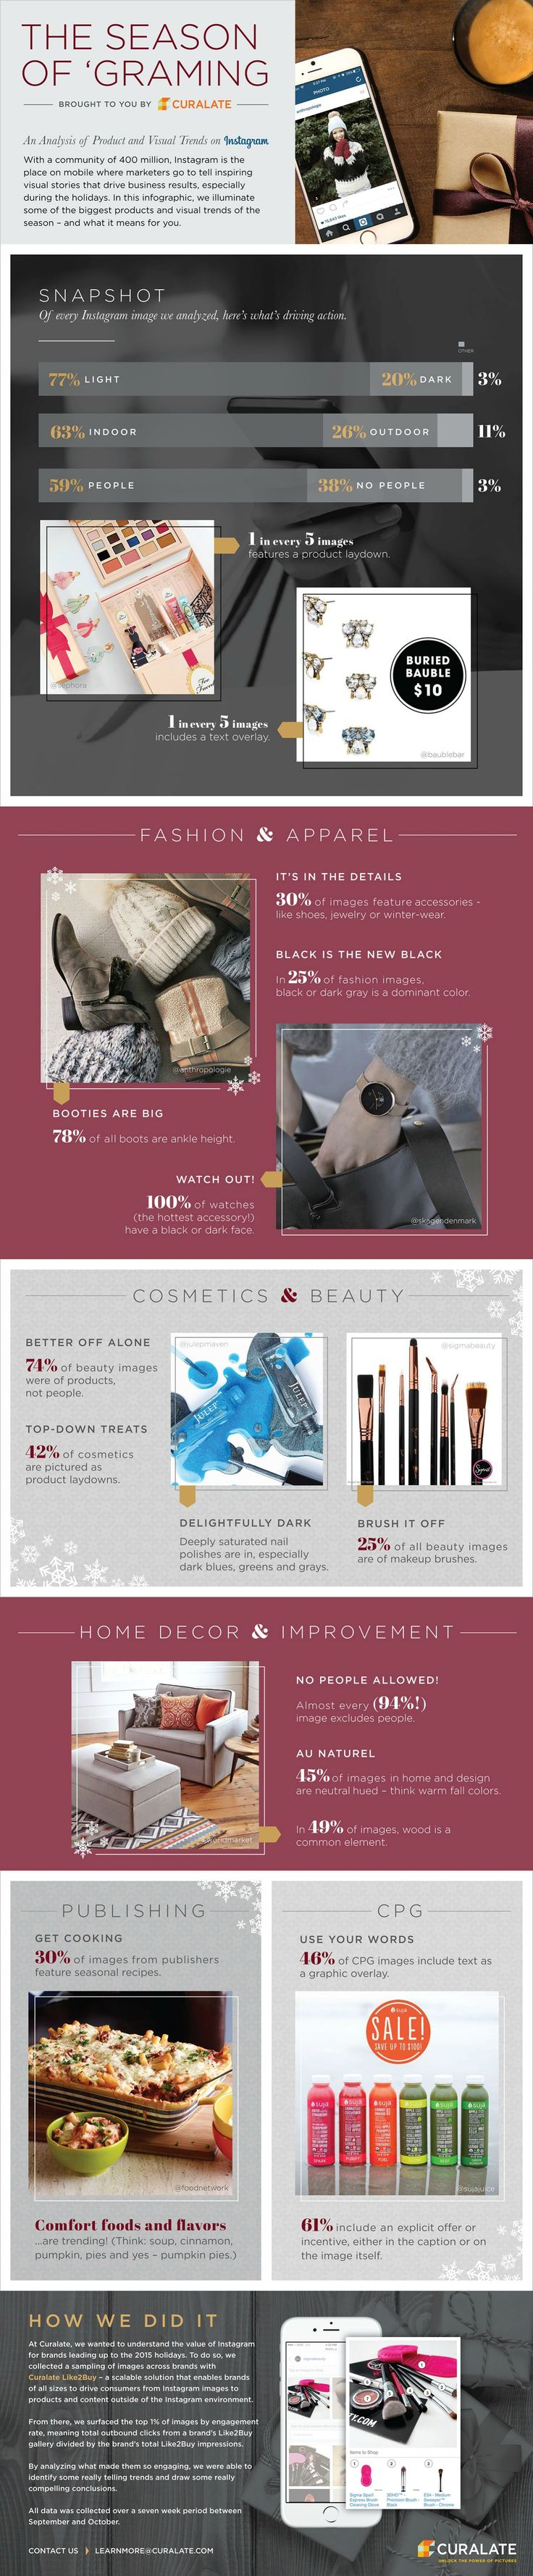 The Season Of 'Graming: An Analysis Of Product and Visual Trends On Instagram [Infographic] | Social Media Today